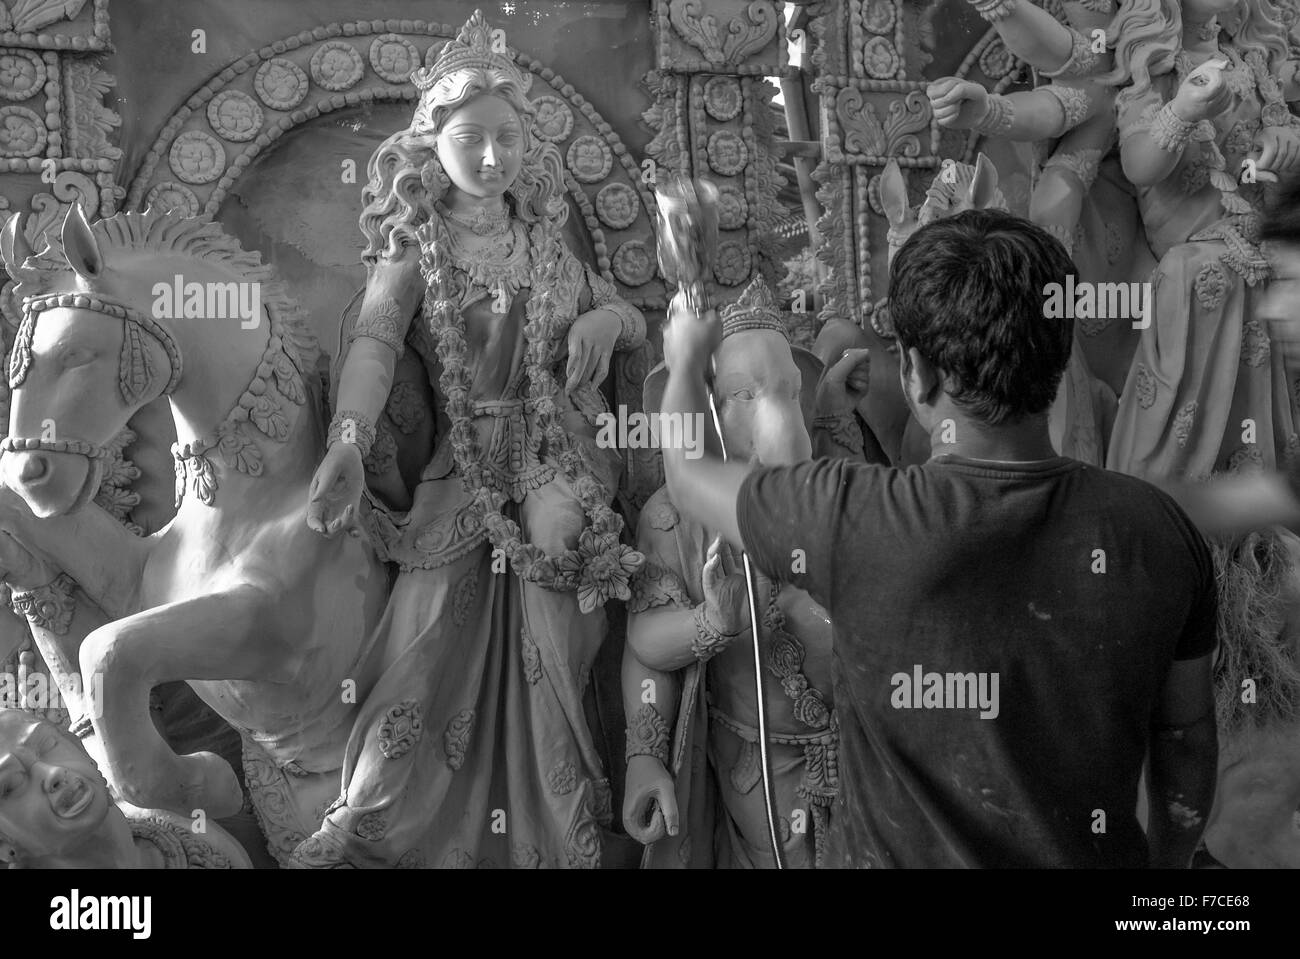 Indian idols sculpture preparation for the Durga traditional festival, India. - Stock Image